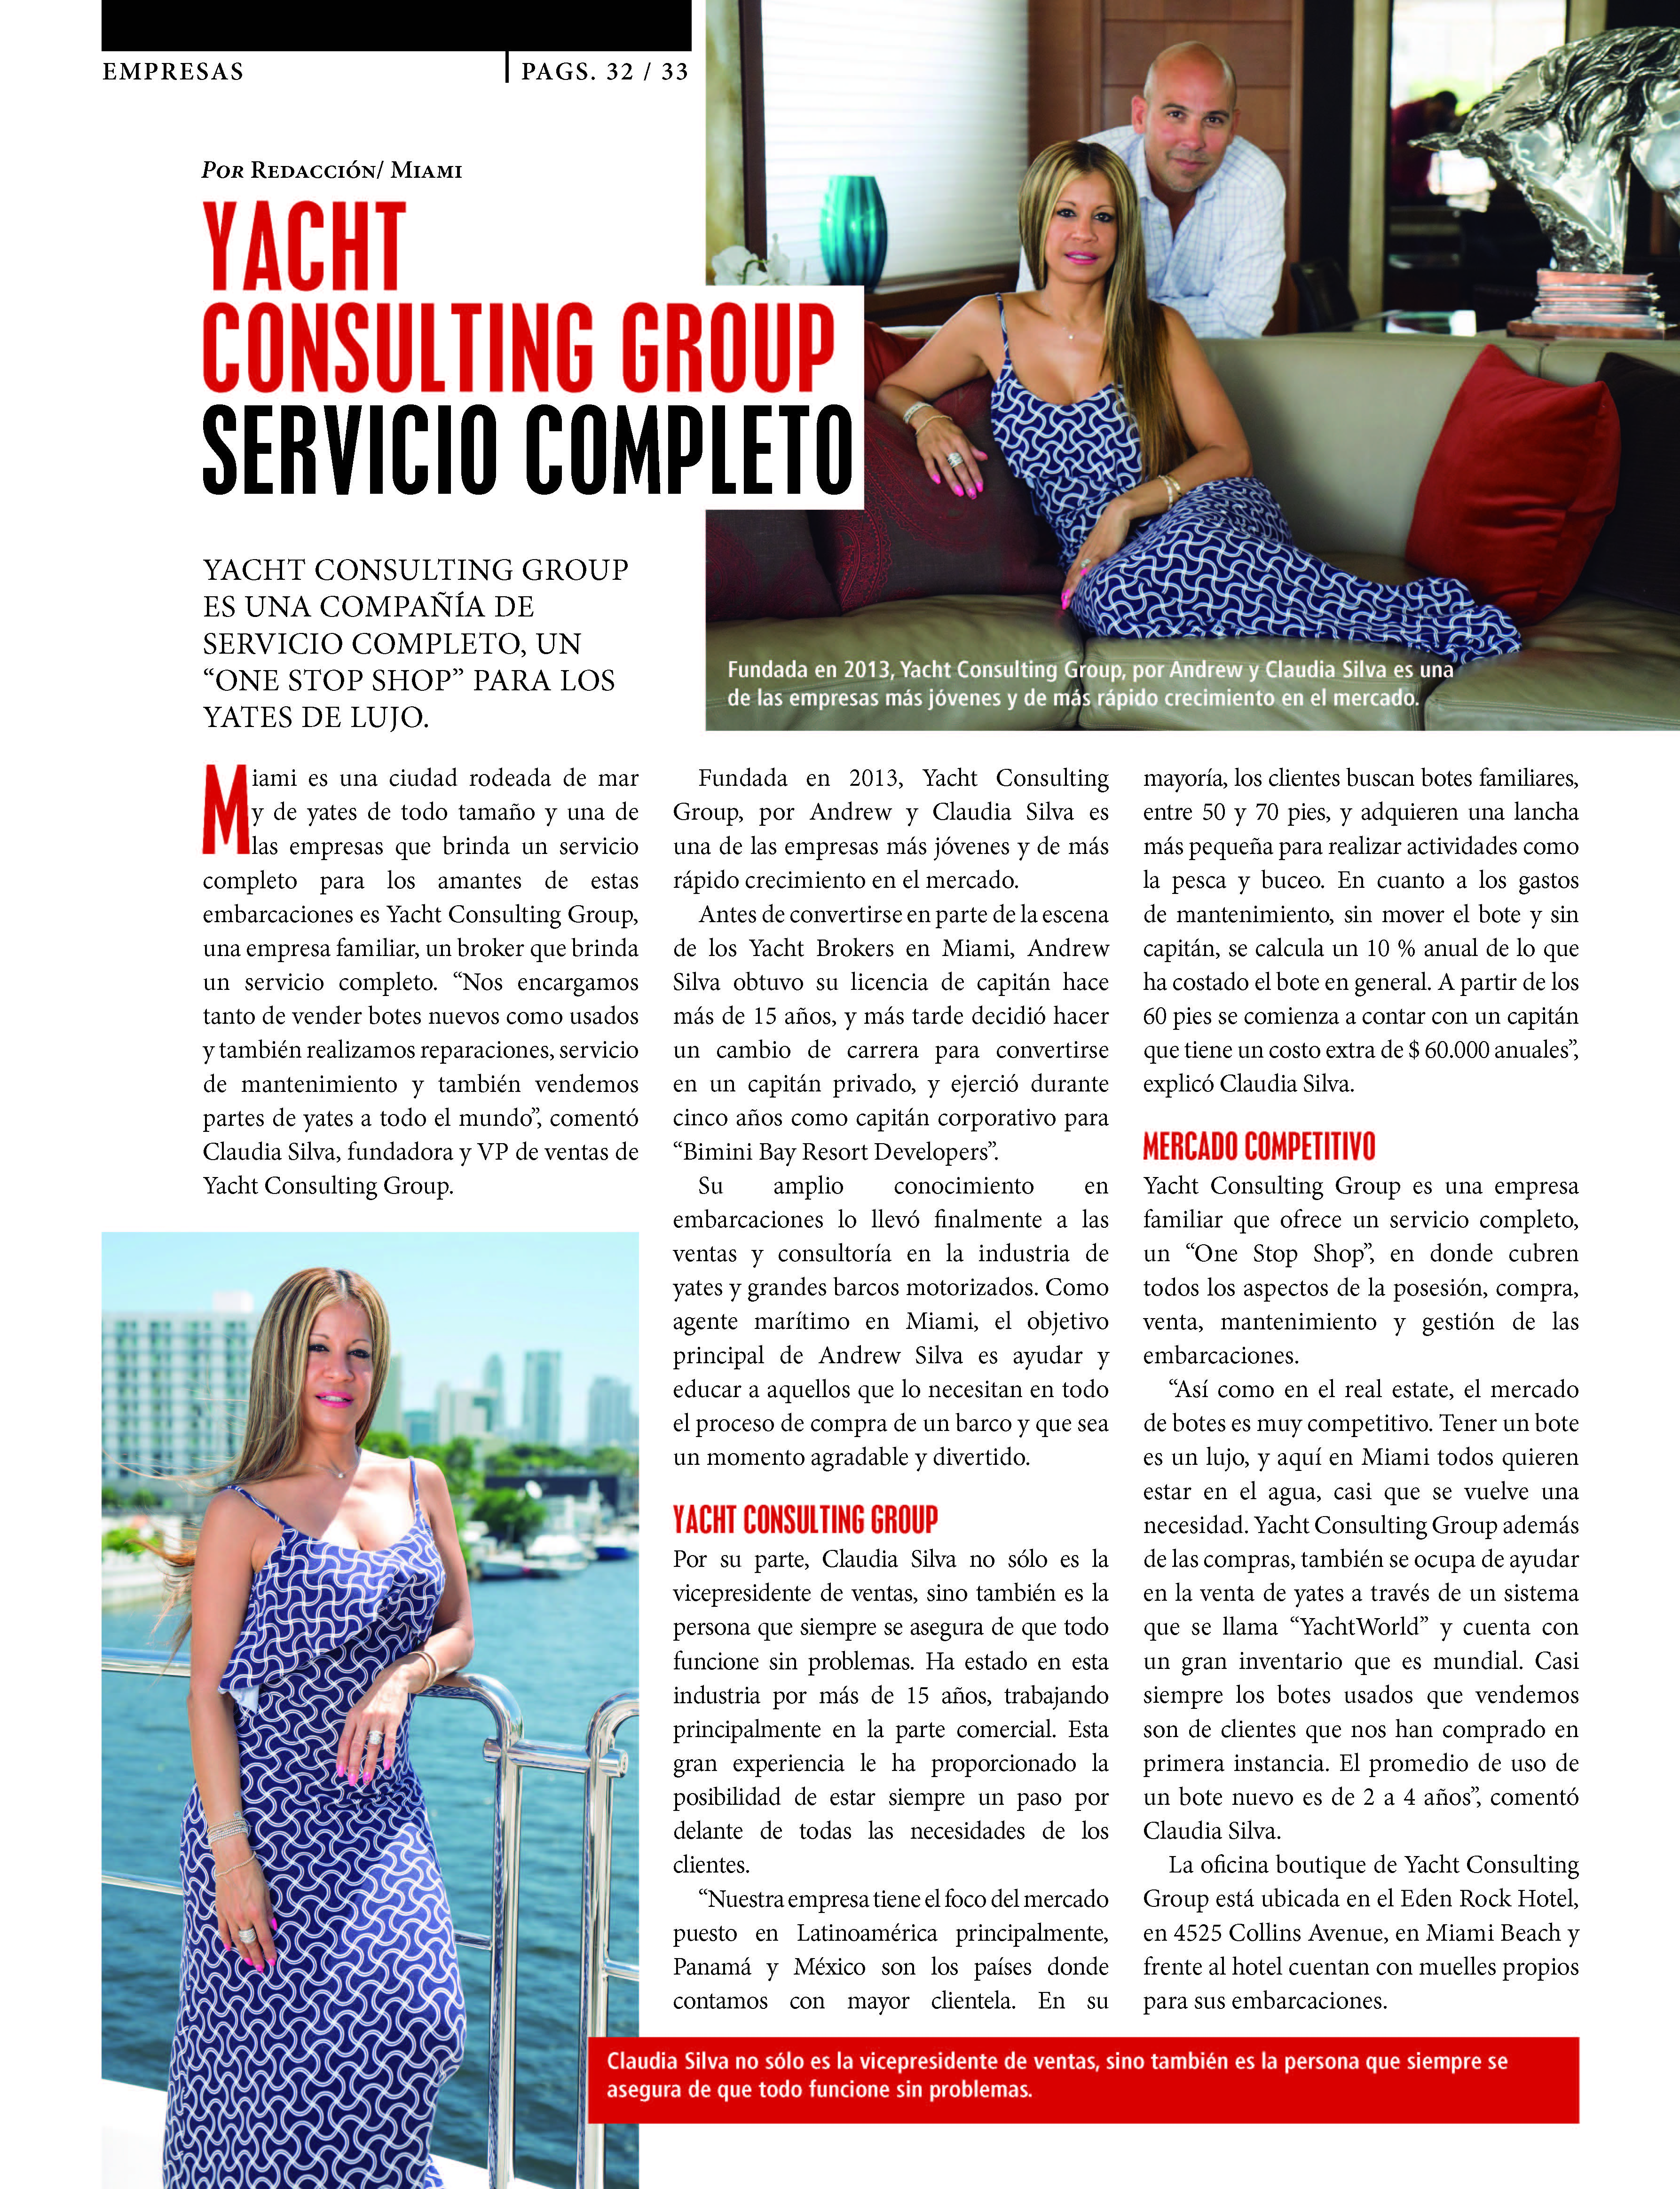 YACHT CONSULTING GROUP SERVICIO COMPLETO